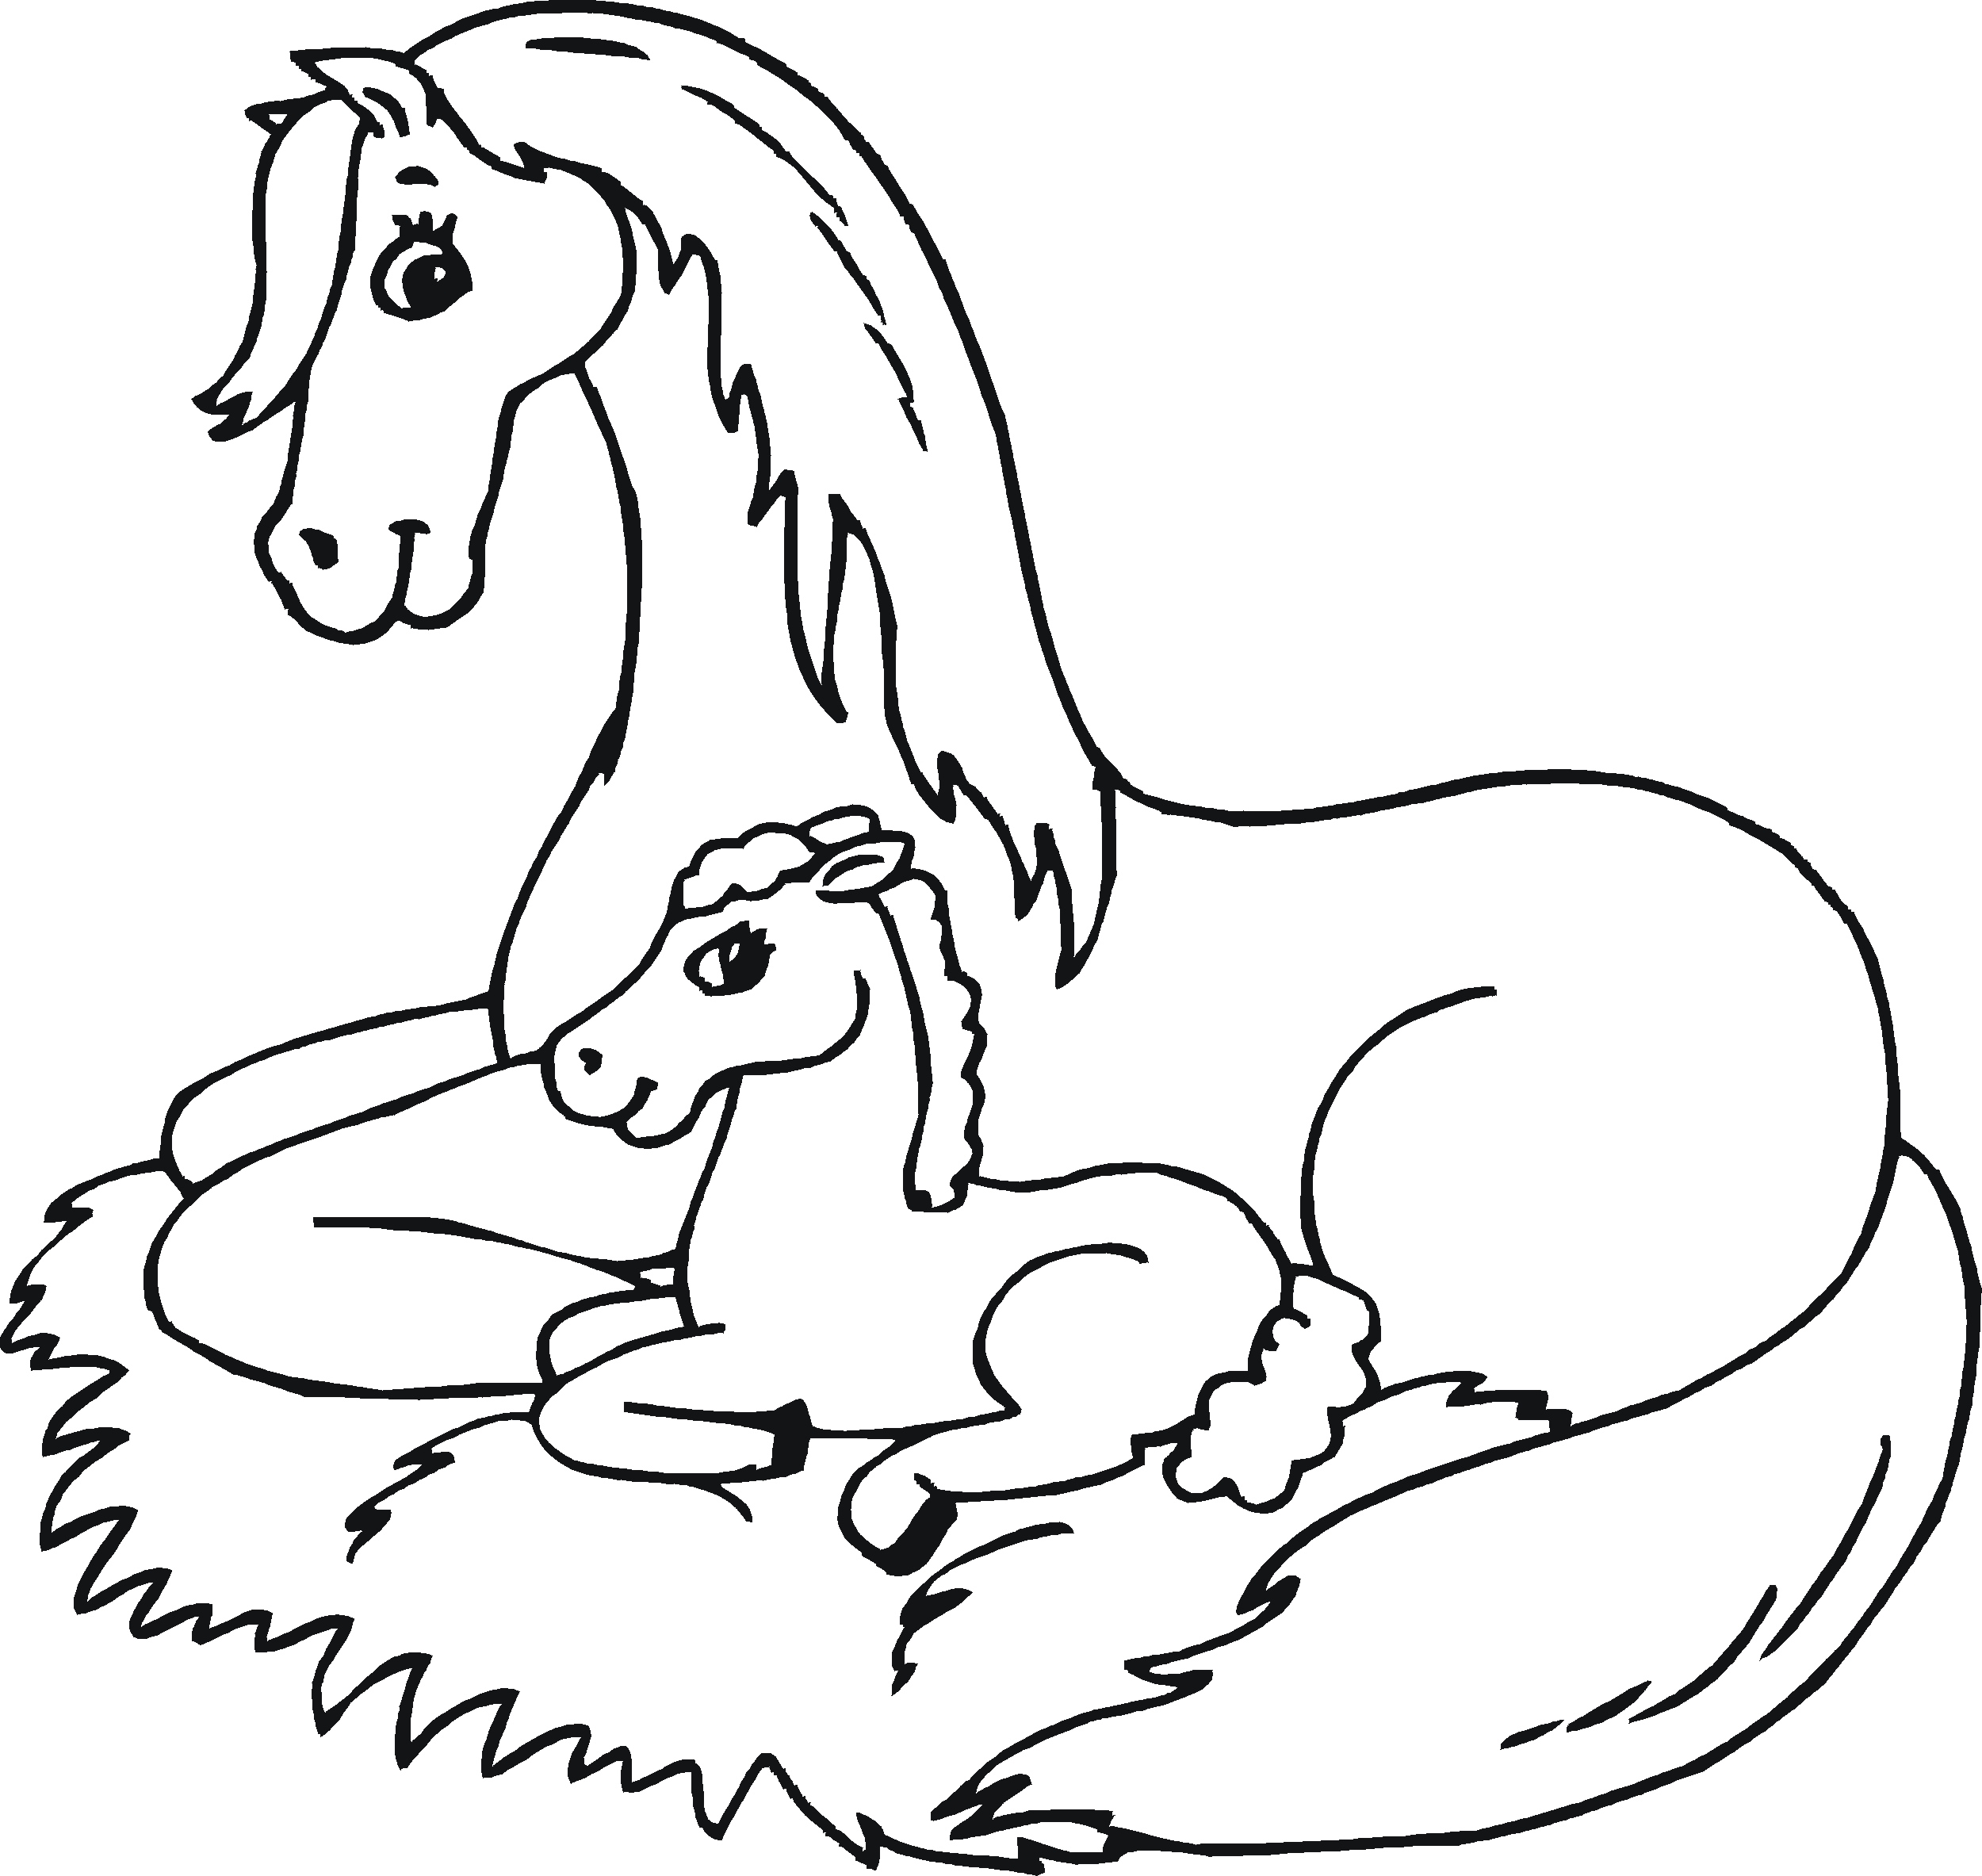 coloring images horse free horse coloring pages coloring horse images